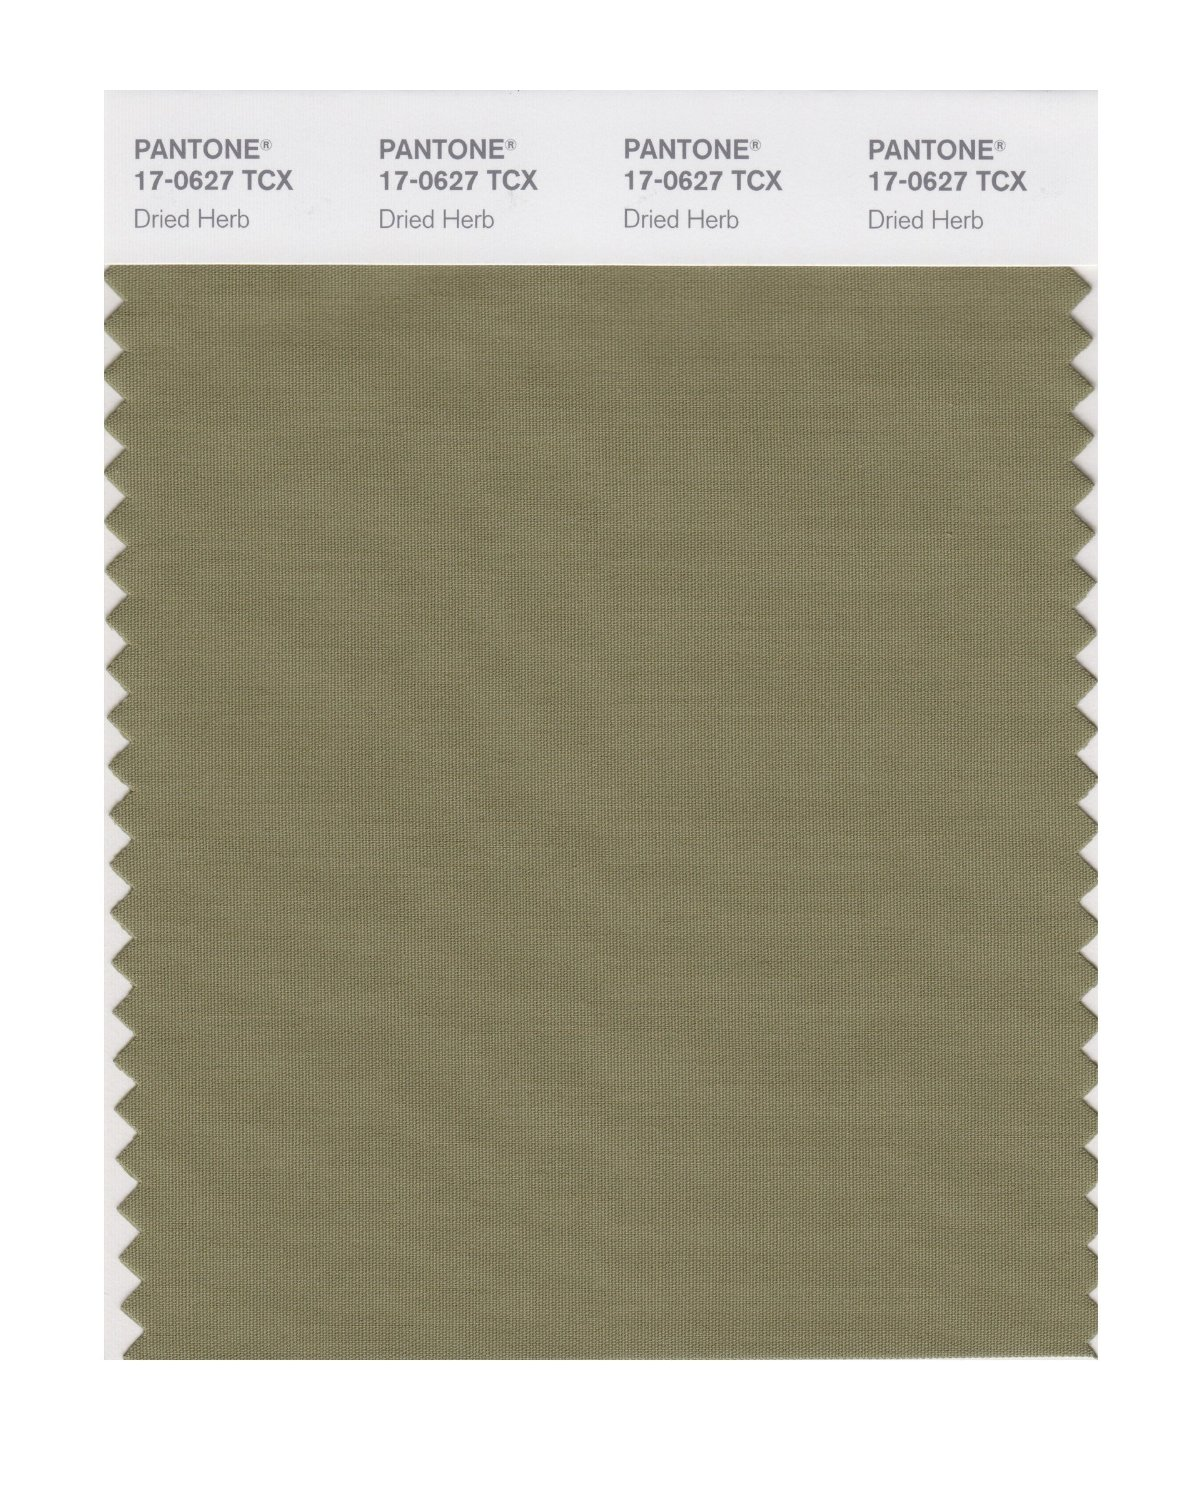 Pantone Smart Swatch 17-0627 Dried Herb